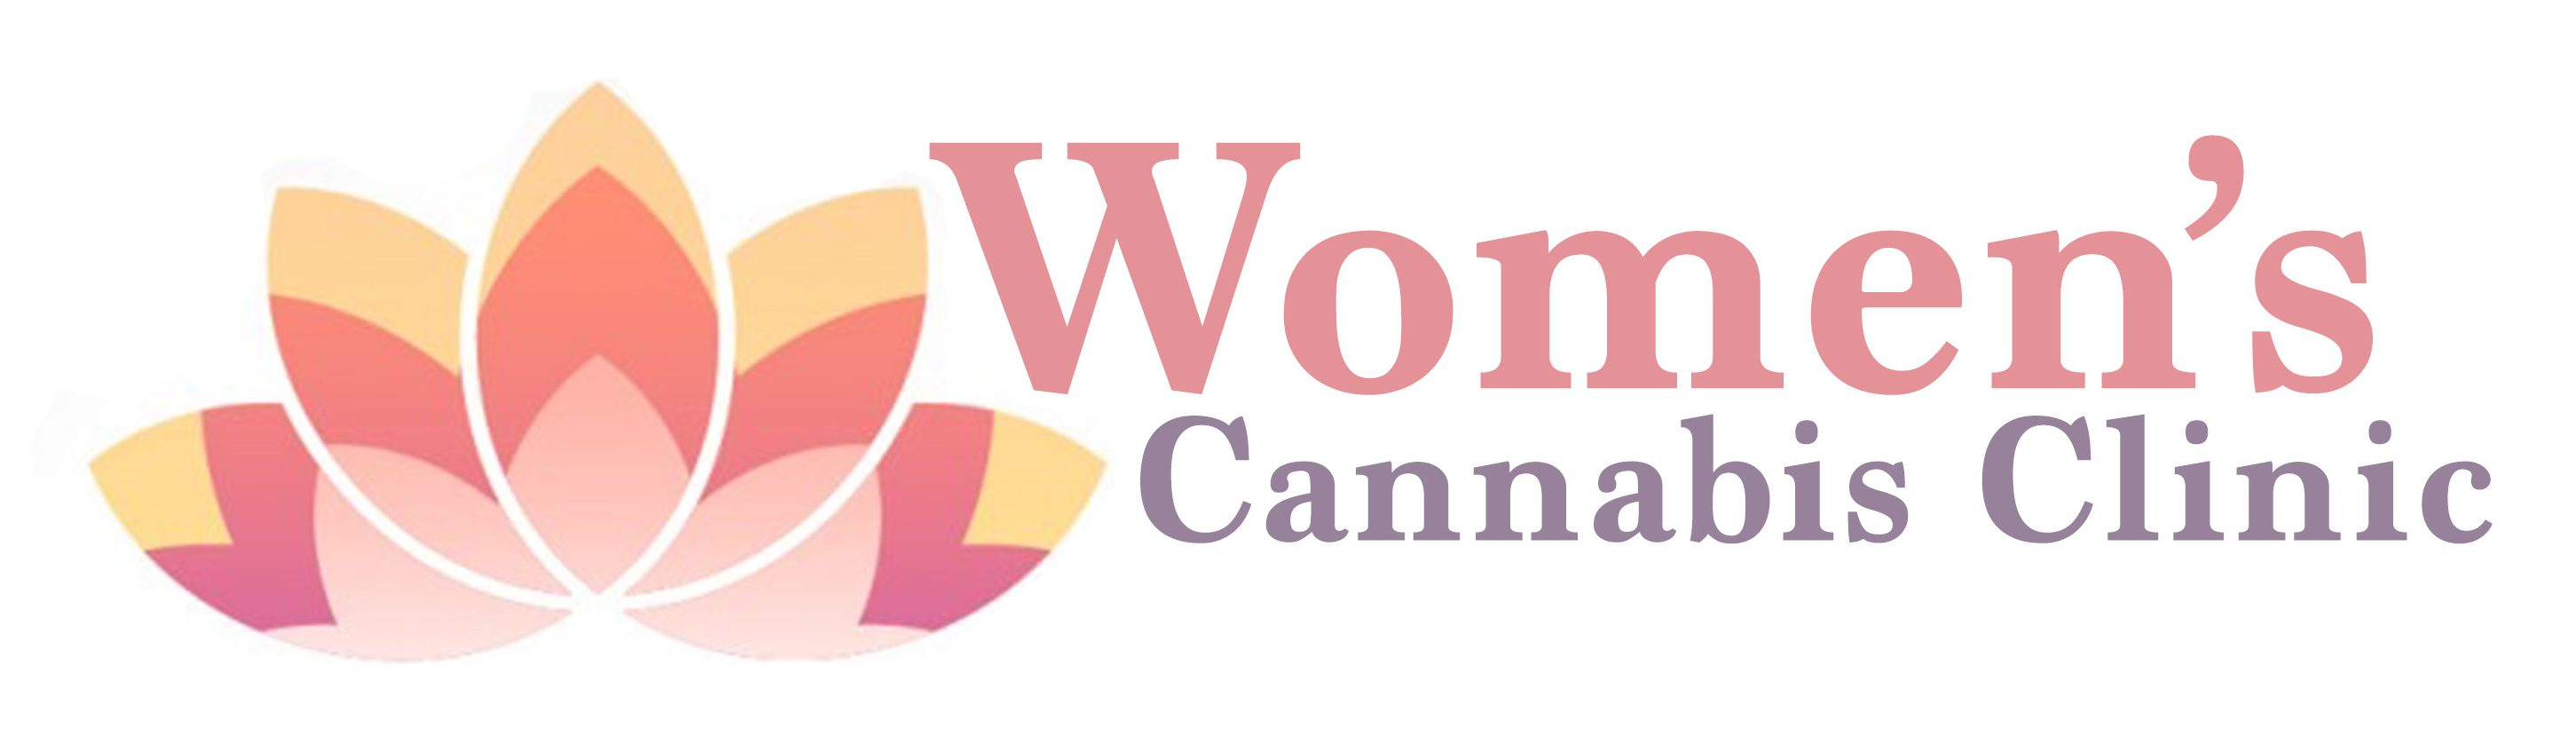 Women's Cannabis Clinic